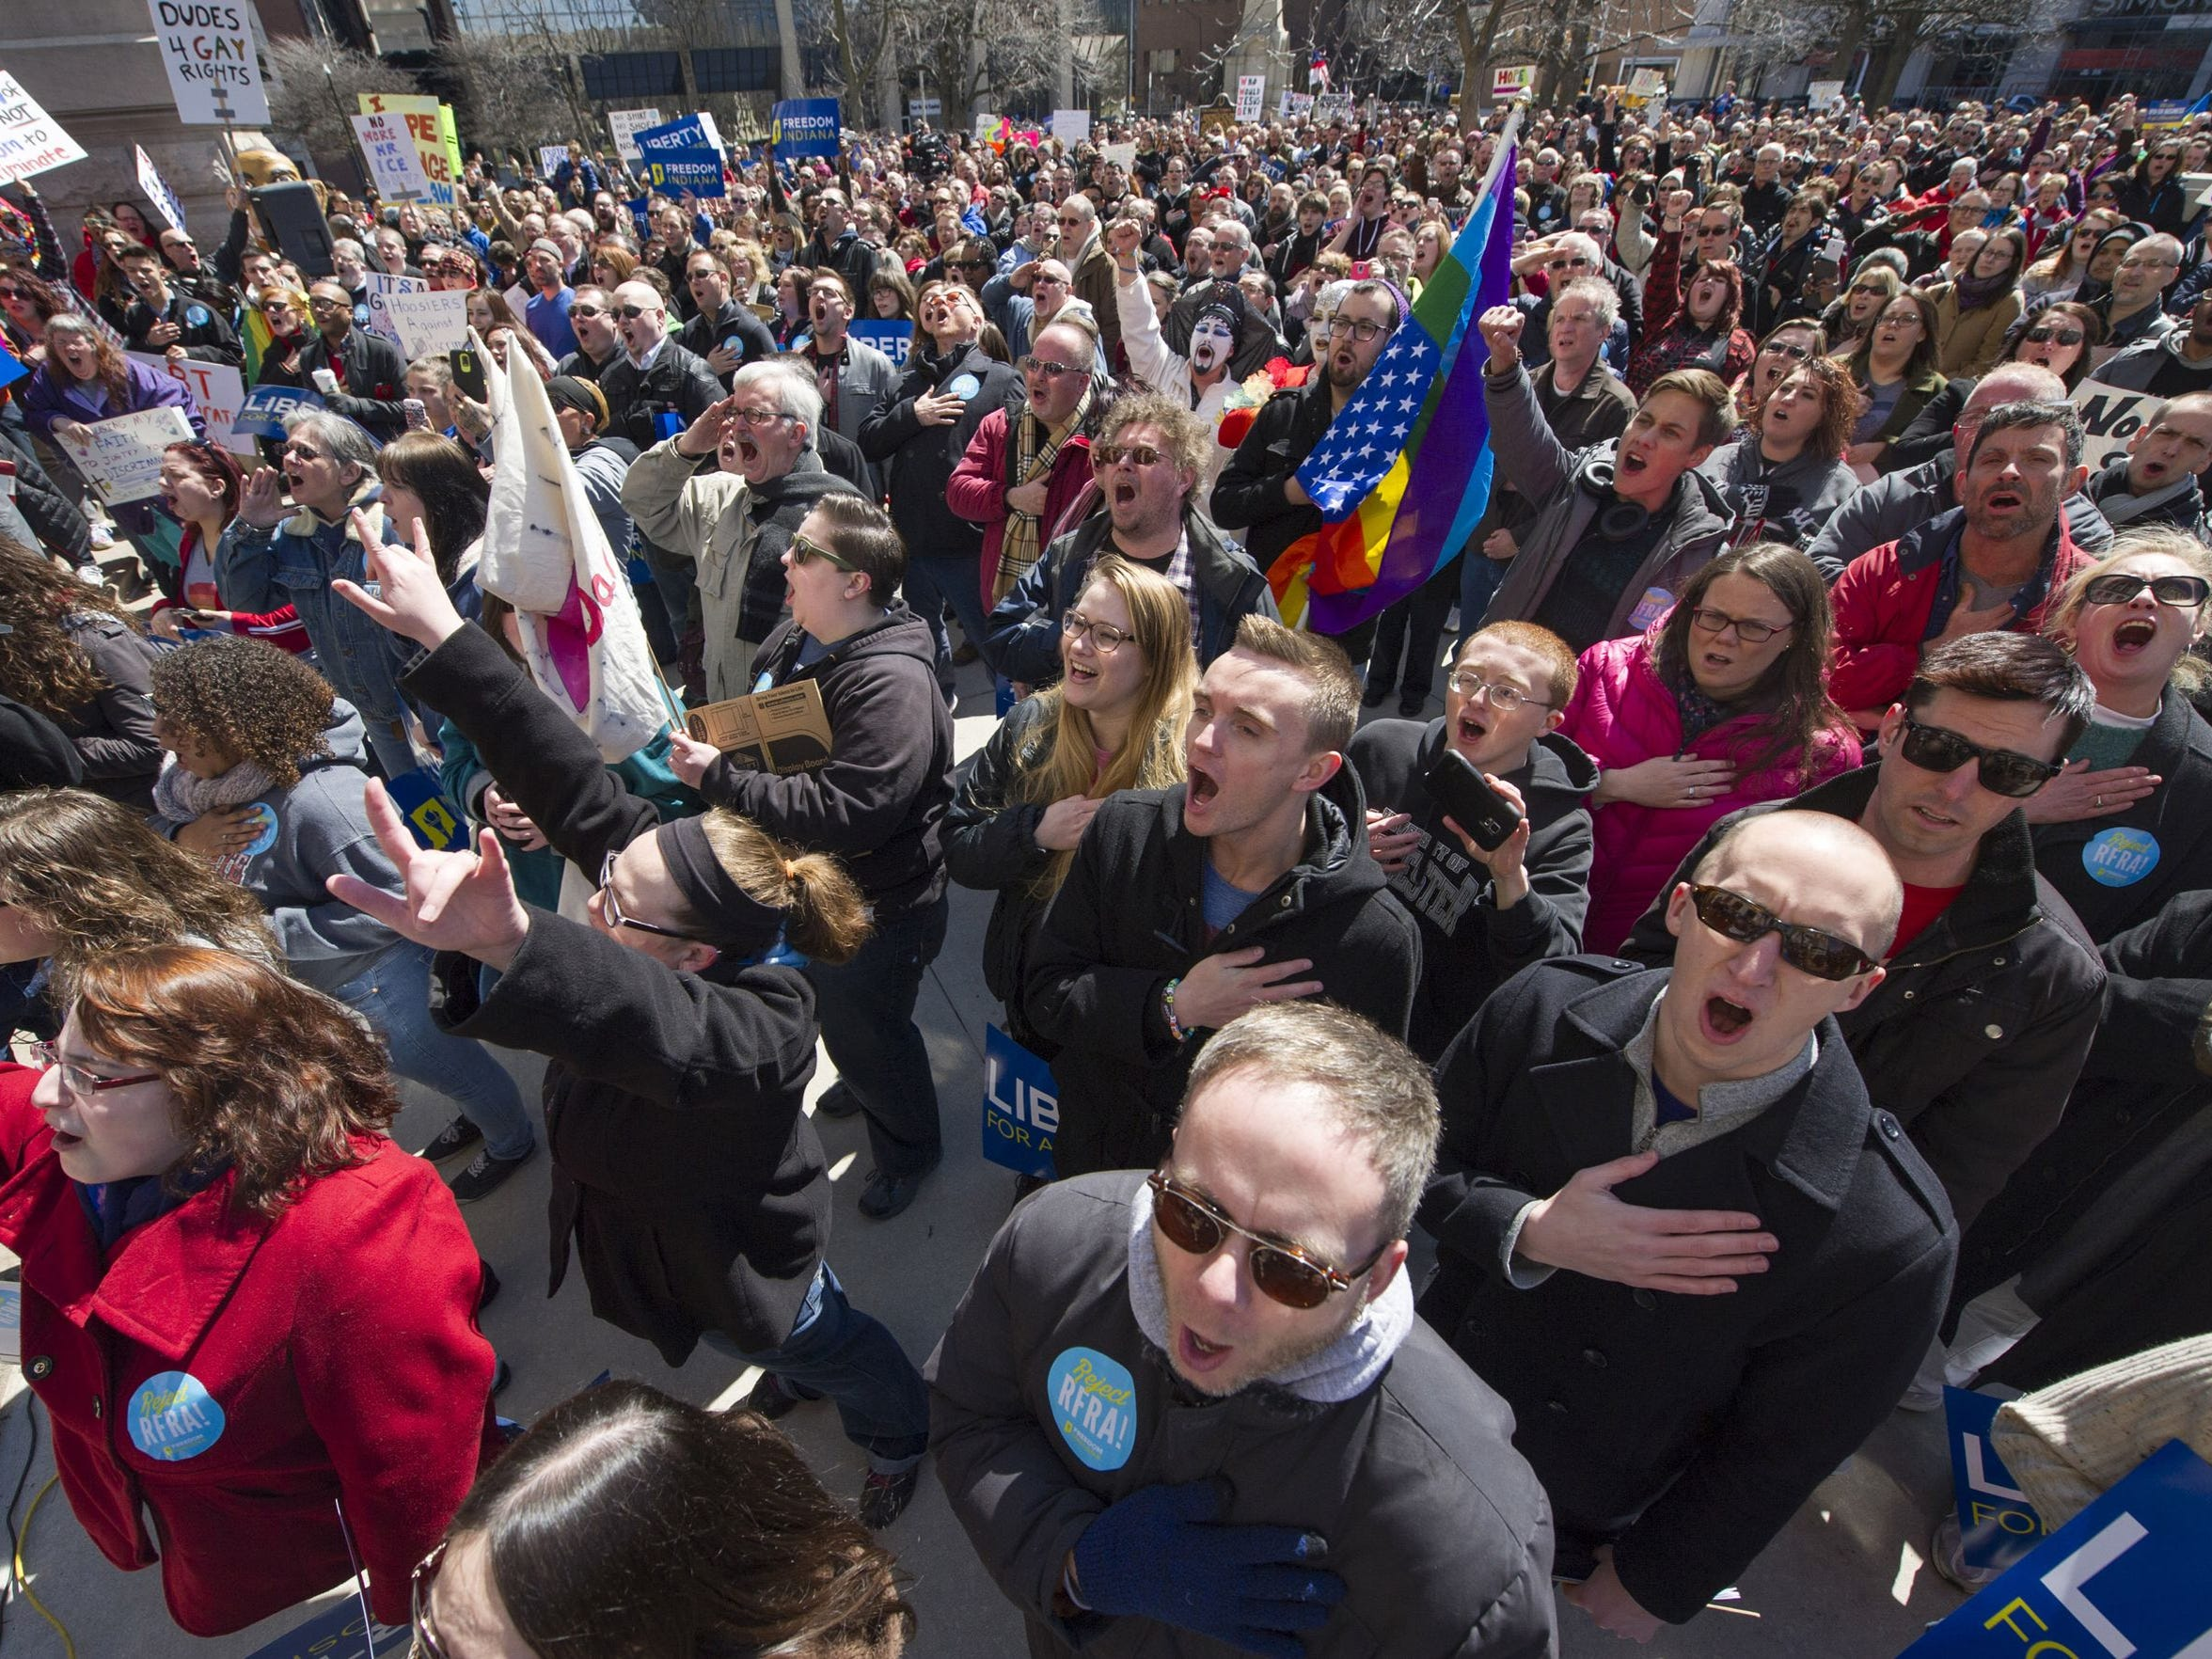 Thousands of opponents of the Religious Freedom Restoration